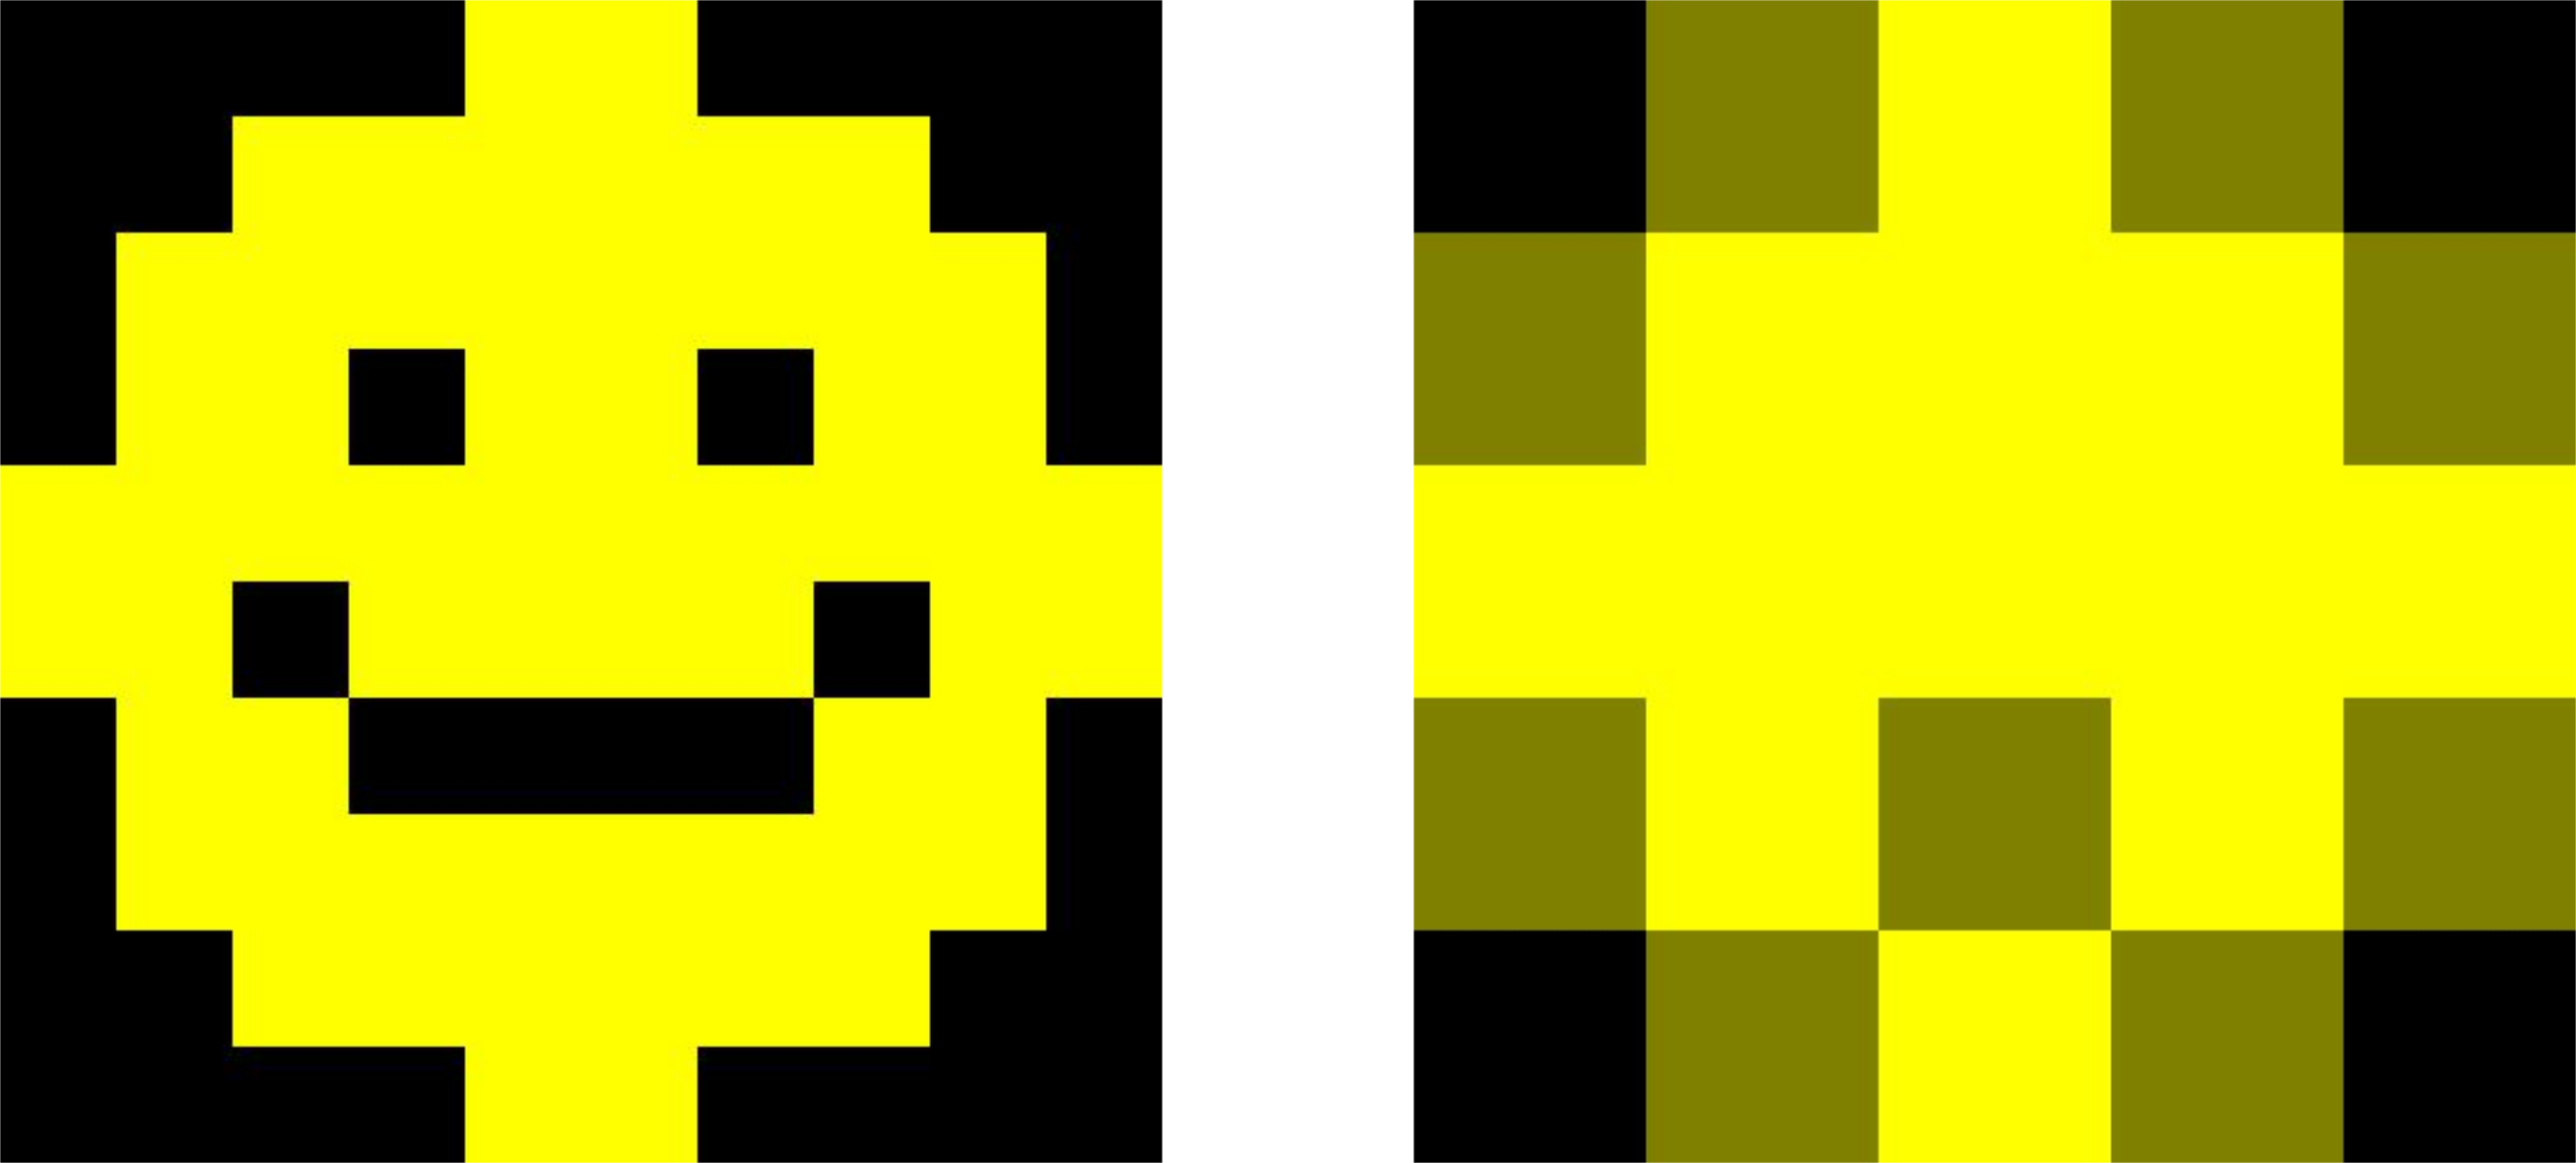 On the left, a  500 pixel by 500 pixel version of the 10 pixel by 10 pixel smiley face emoji created in week 2. On the right, a 500 pixel by 500 pixel version of the compressed 5 pixel by 5 pixel smiley face emoji created above. The eyes are no longer visible, the mouth is now just a single brown pixel, and the edge of the emoji is less smooth and contains some brown pixels.